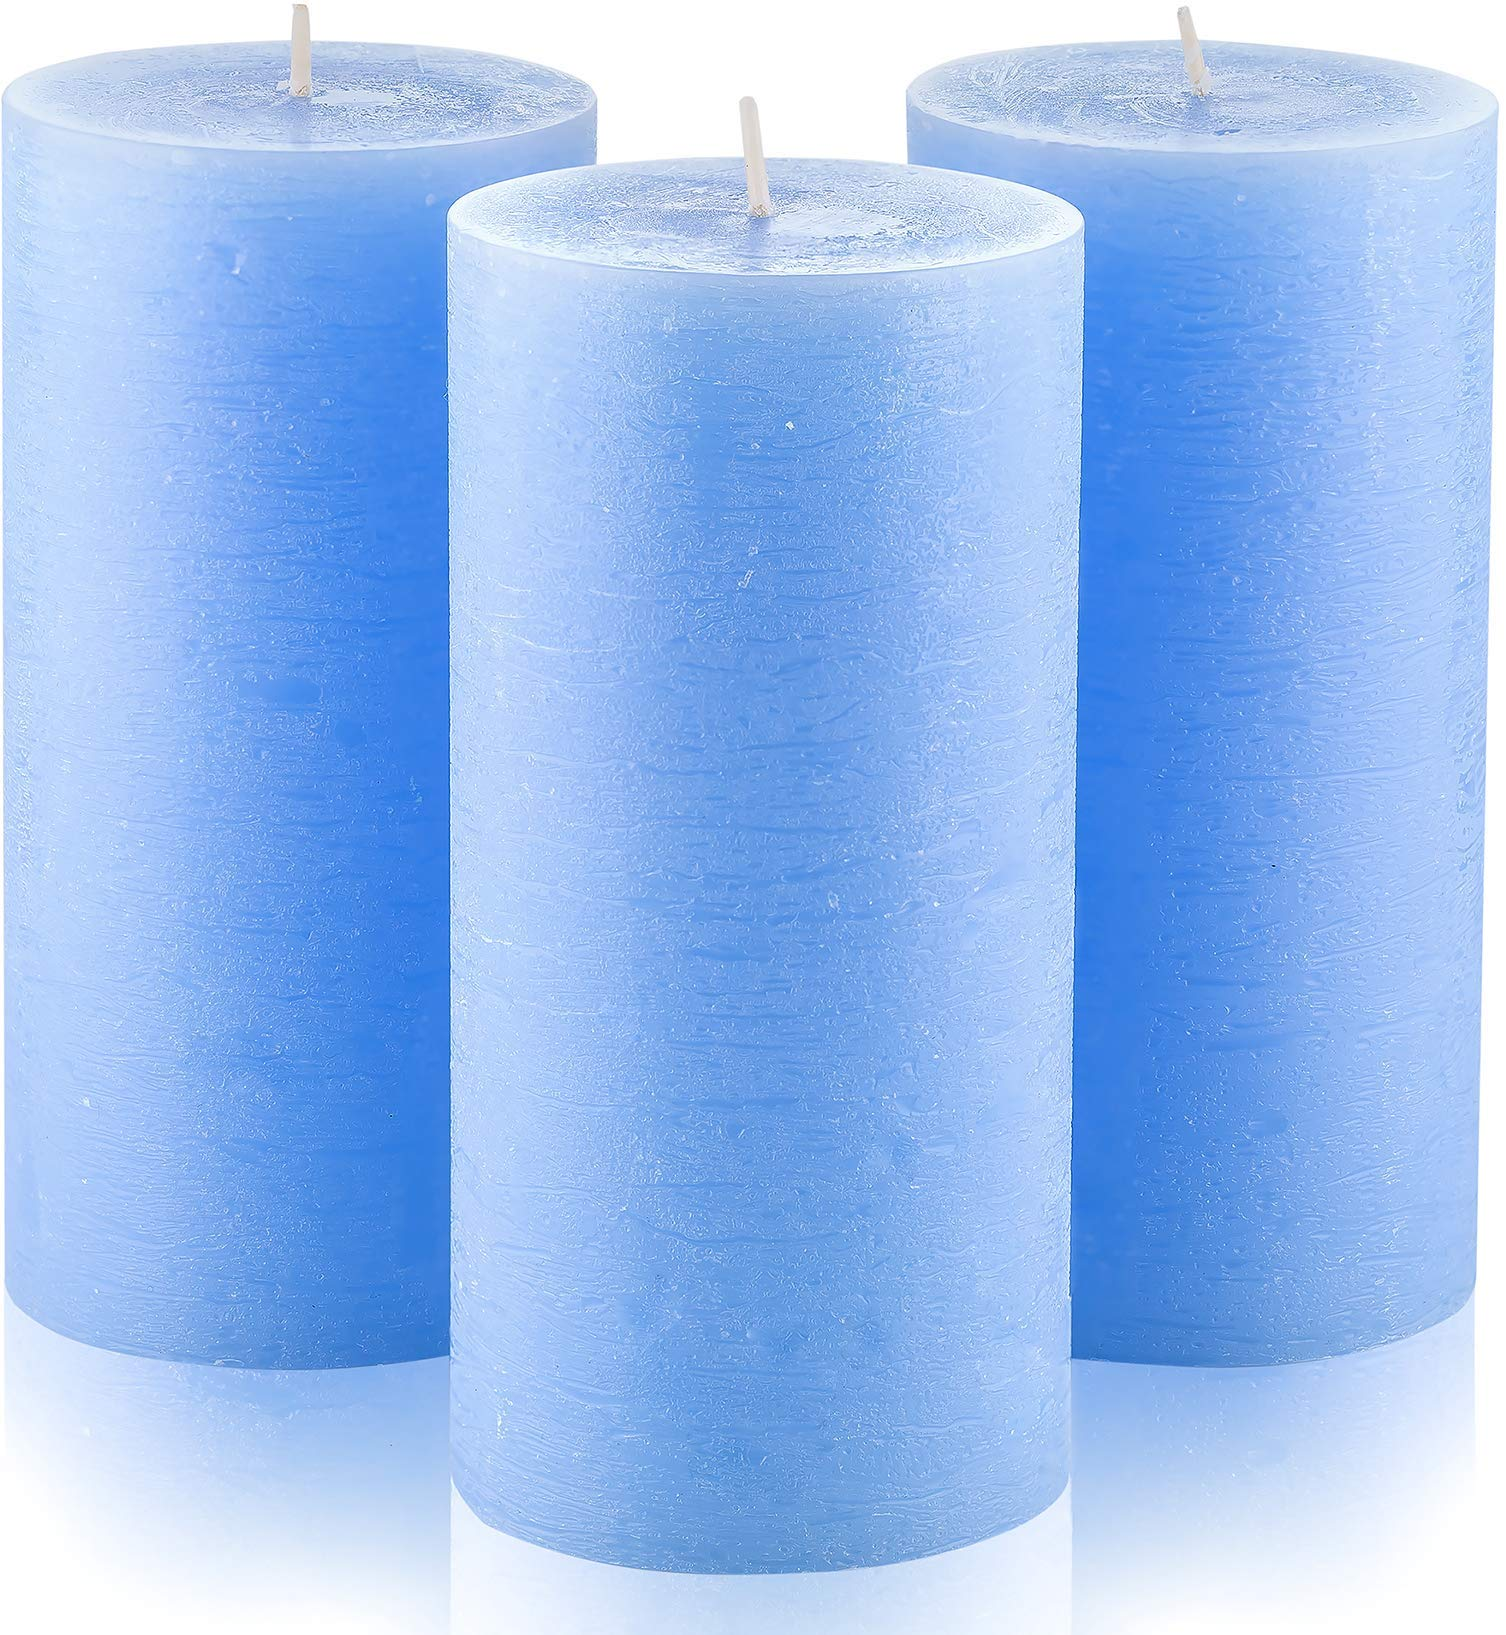 "Melt Candle Company Set of 3 Light Blue Pillar Candles 3"" x 6"" Unscented for Weddings Home Decoration Restaurant Church Spa Dripless Smokeless"